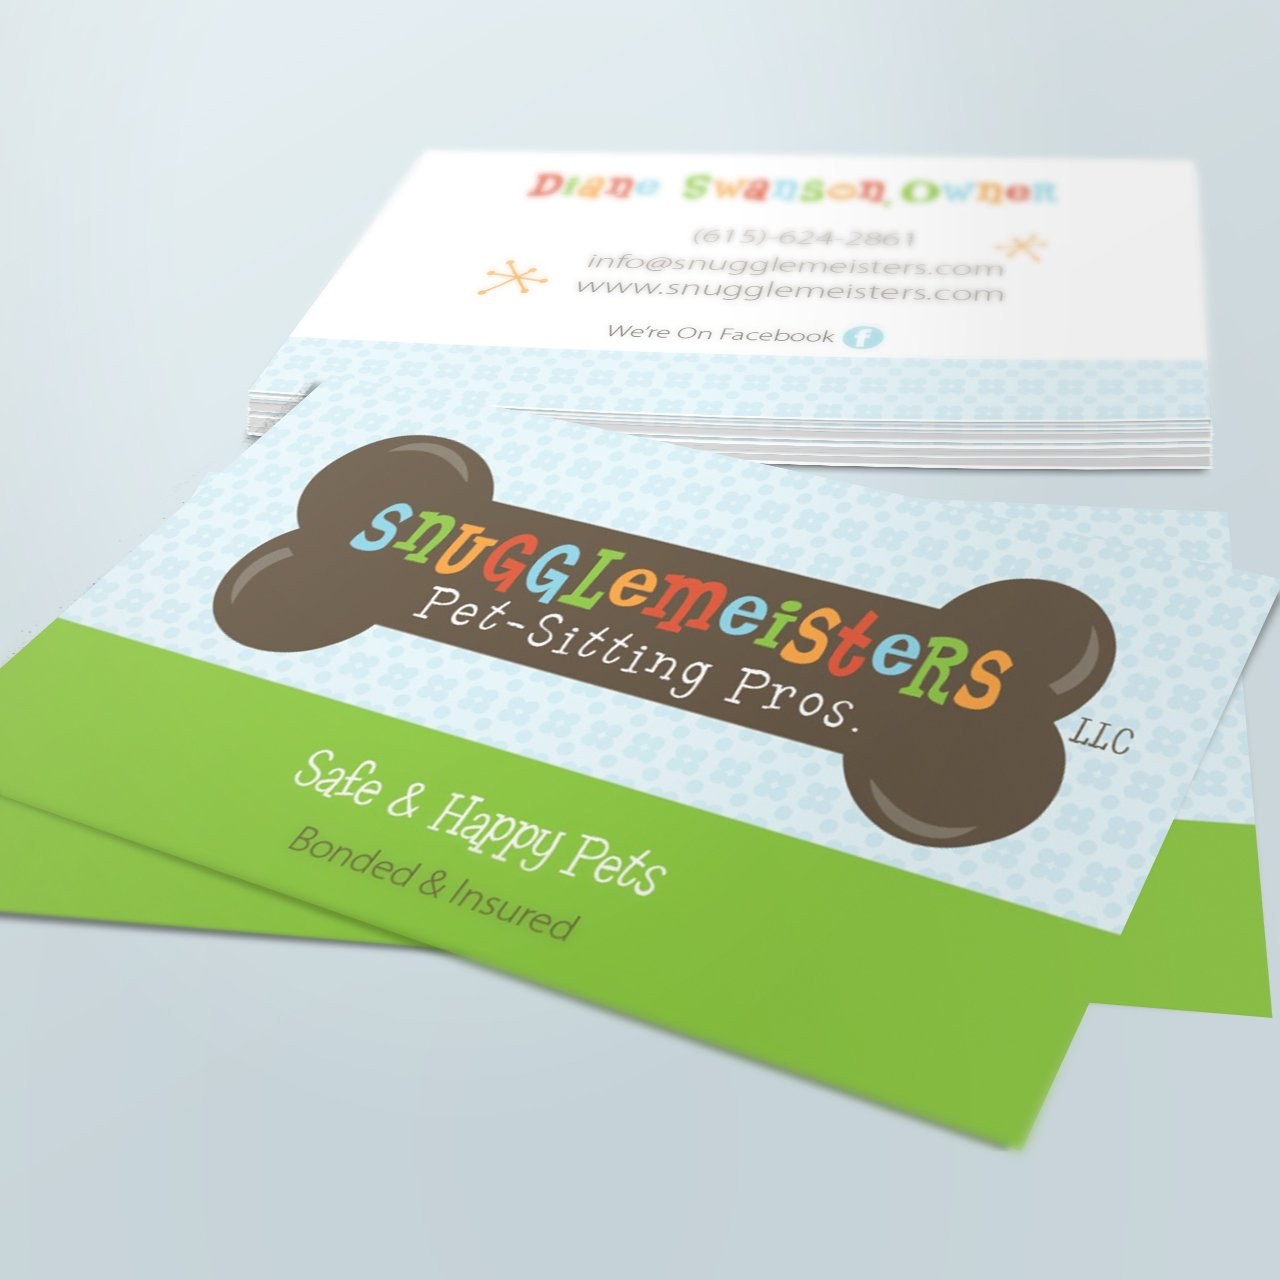 Snugglemeisters-Pet-Sitting-Business-Card-Design2